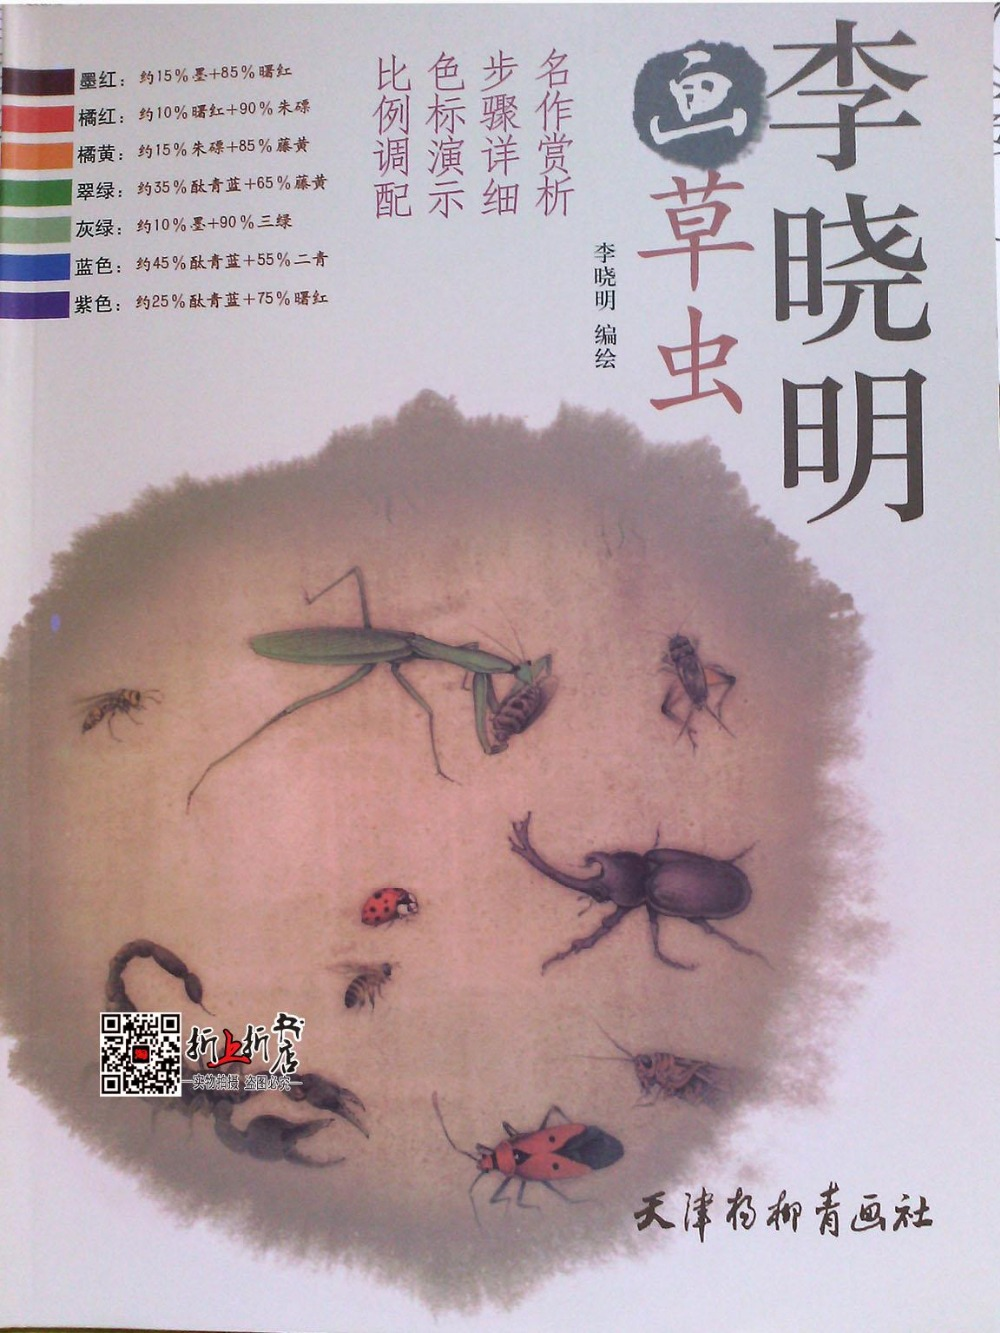 ₩Li Xiaoming Meticulous painting Insects Contributed papers Hua Pu ...